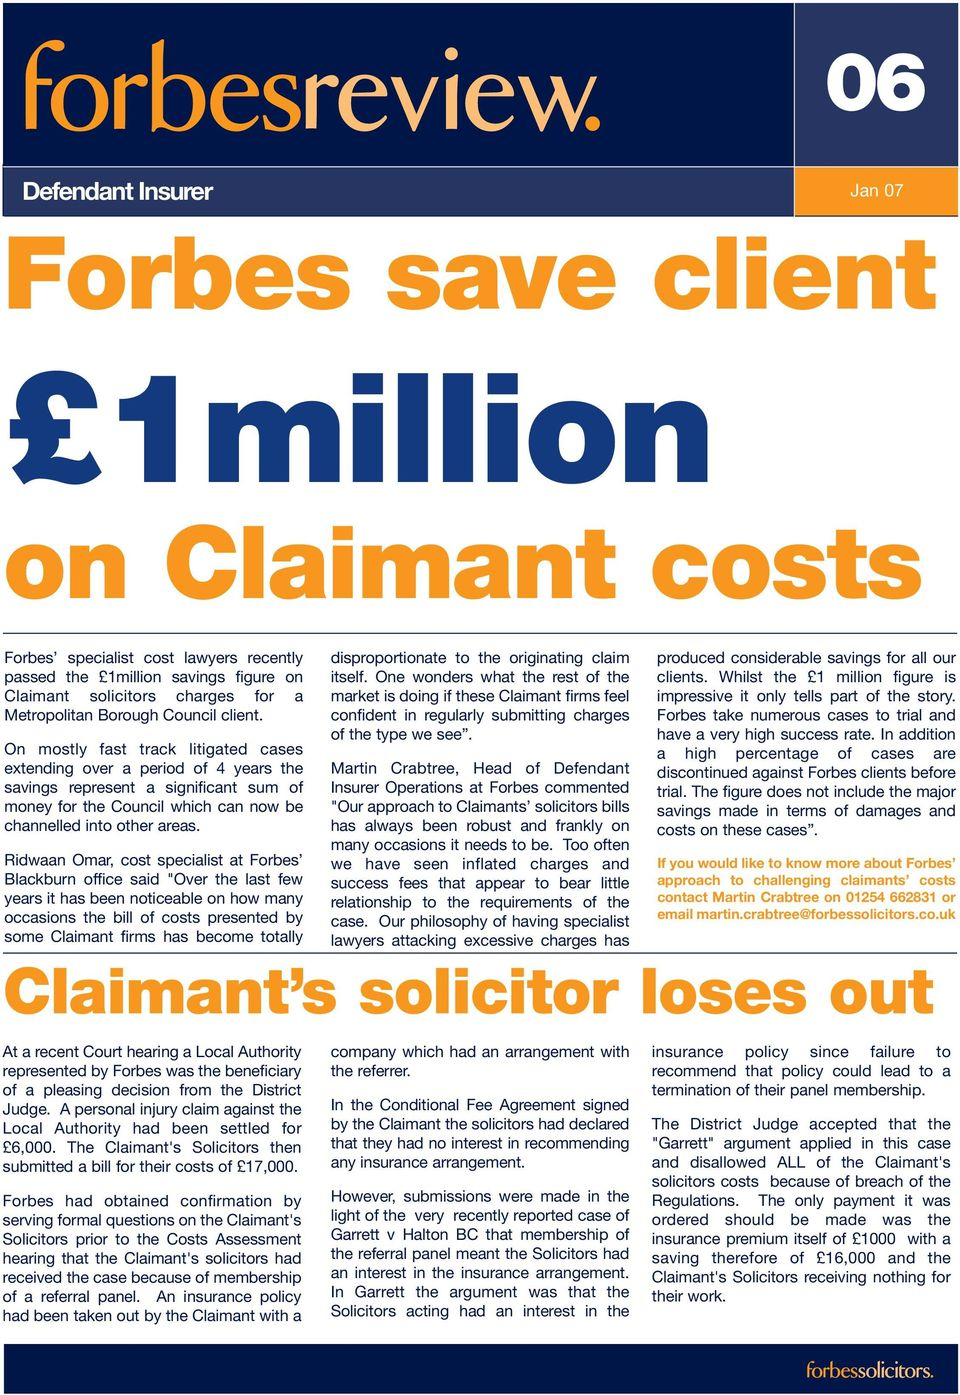 "Ridwaan Omar, cost specialist at Forbes Blackburn office said ""Over the last few years it has been noticeable on how many occasions the bill of costs presented by some Claimant firms has become"